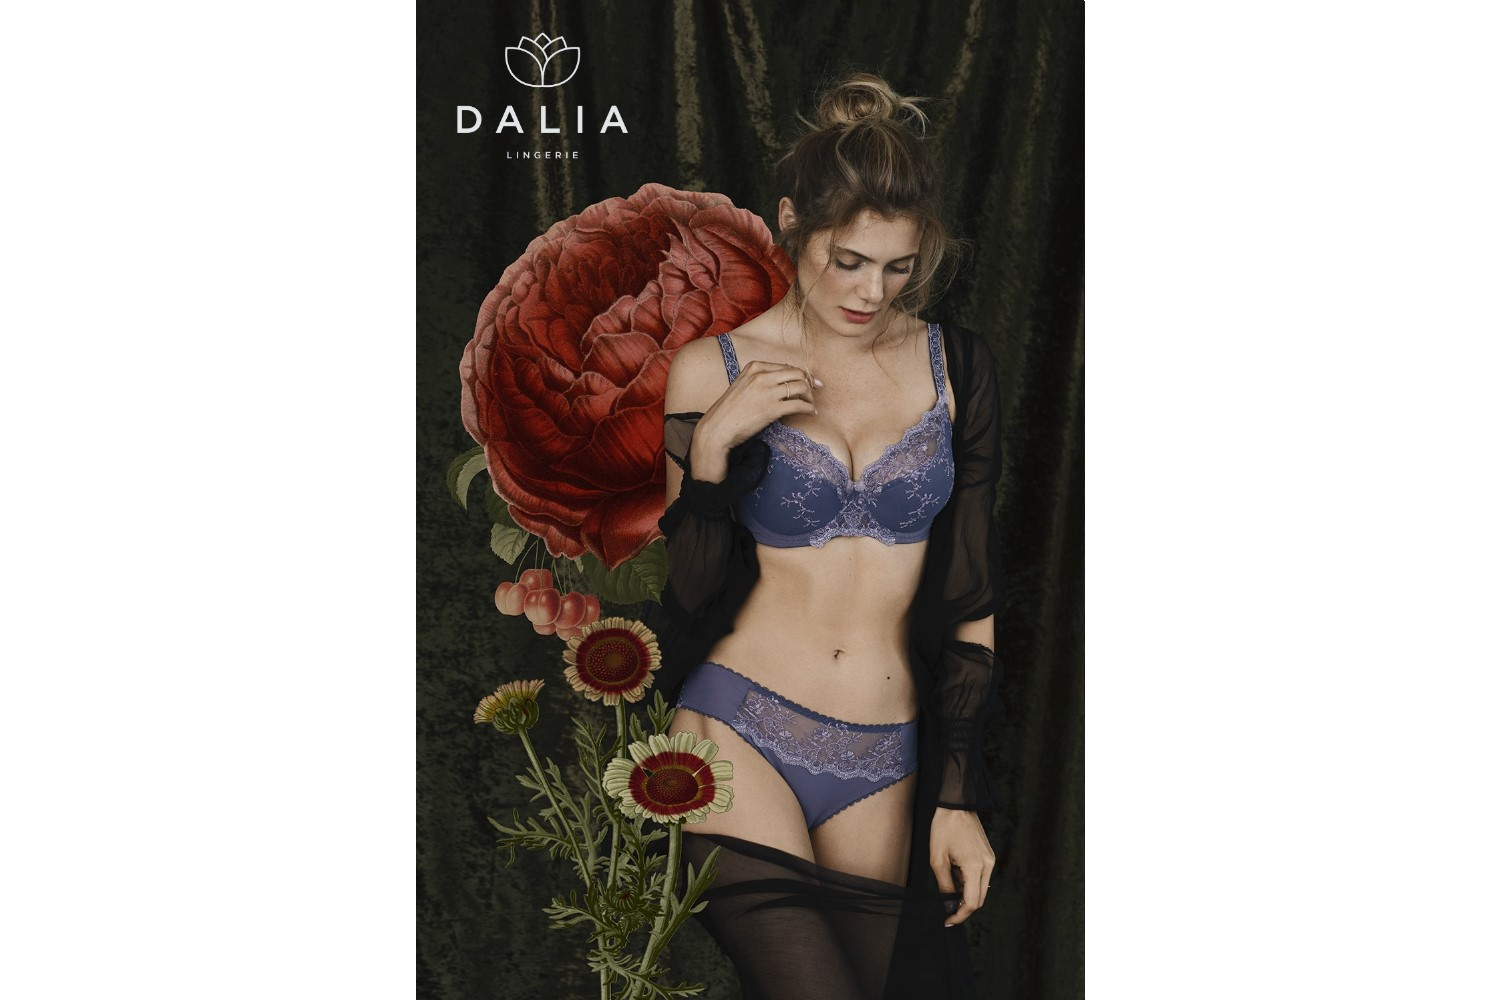 Dalia Lingerie, jesień-zima 2018, Collection: Maja Madej / Dalia Lingerie, Photo: Aleksandra Zaborowska / Papert Pictures, Photographer's assistant: Dave Raw, Retouch: Katarzyna Kędroń, Illustrations: Aleksandra Morawiak, Model: Aleksandra Kowal / Model Plus, MUA: Vika May, Hair: Adam Szaro,  Style: Robert Losyk, Production: Korporacja Stylu